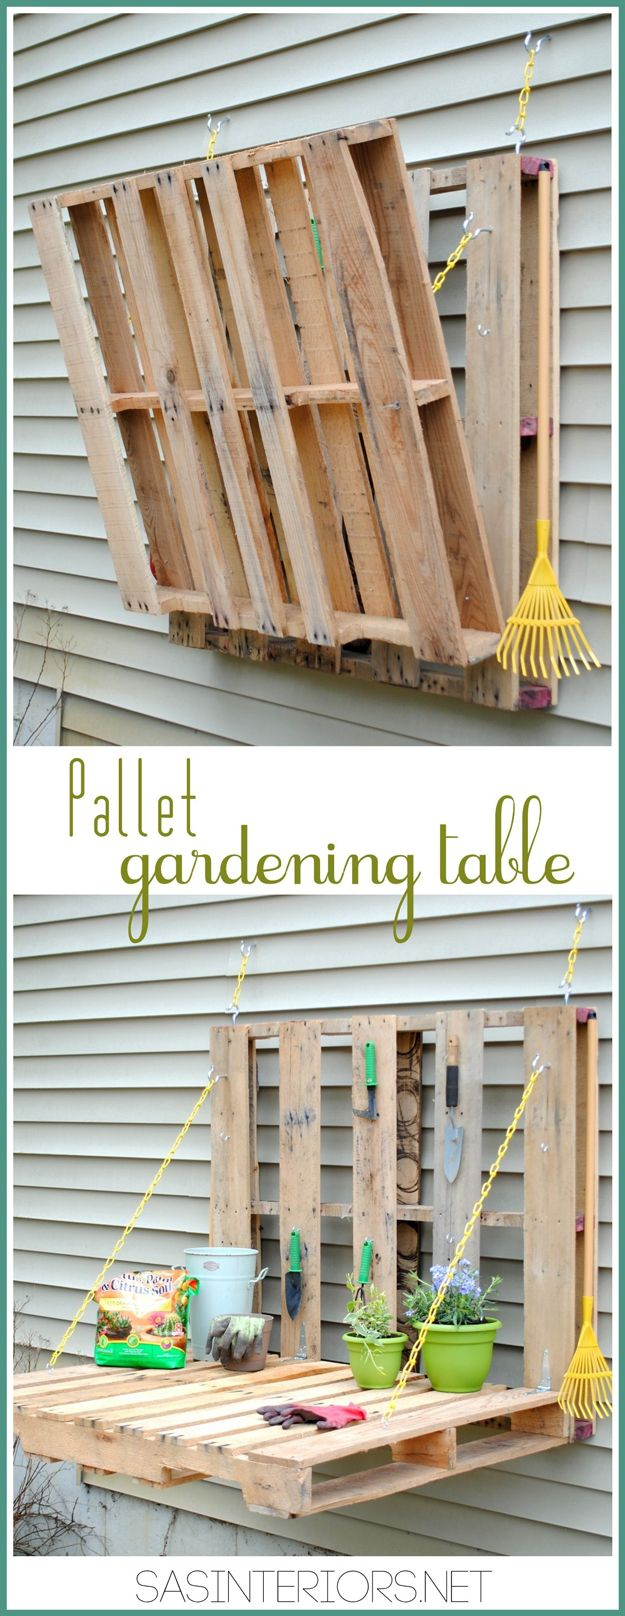 349 best diy pallets upcycle ideas images on pinterest pallet 349 best diy pallets upcycle ideas images on pinterest pallet ideas pallet designs and pallet projects solutioingenieria Images